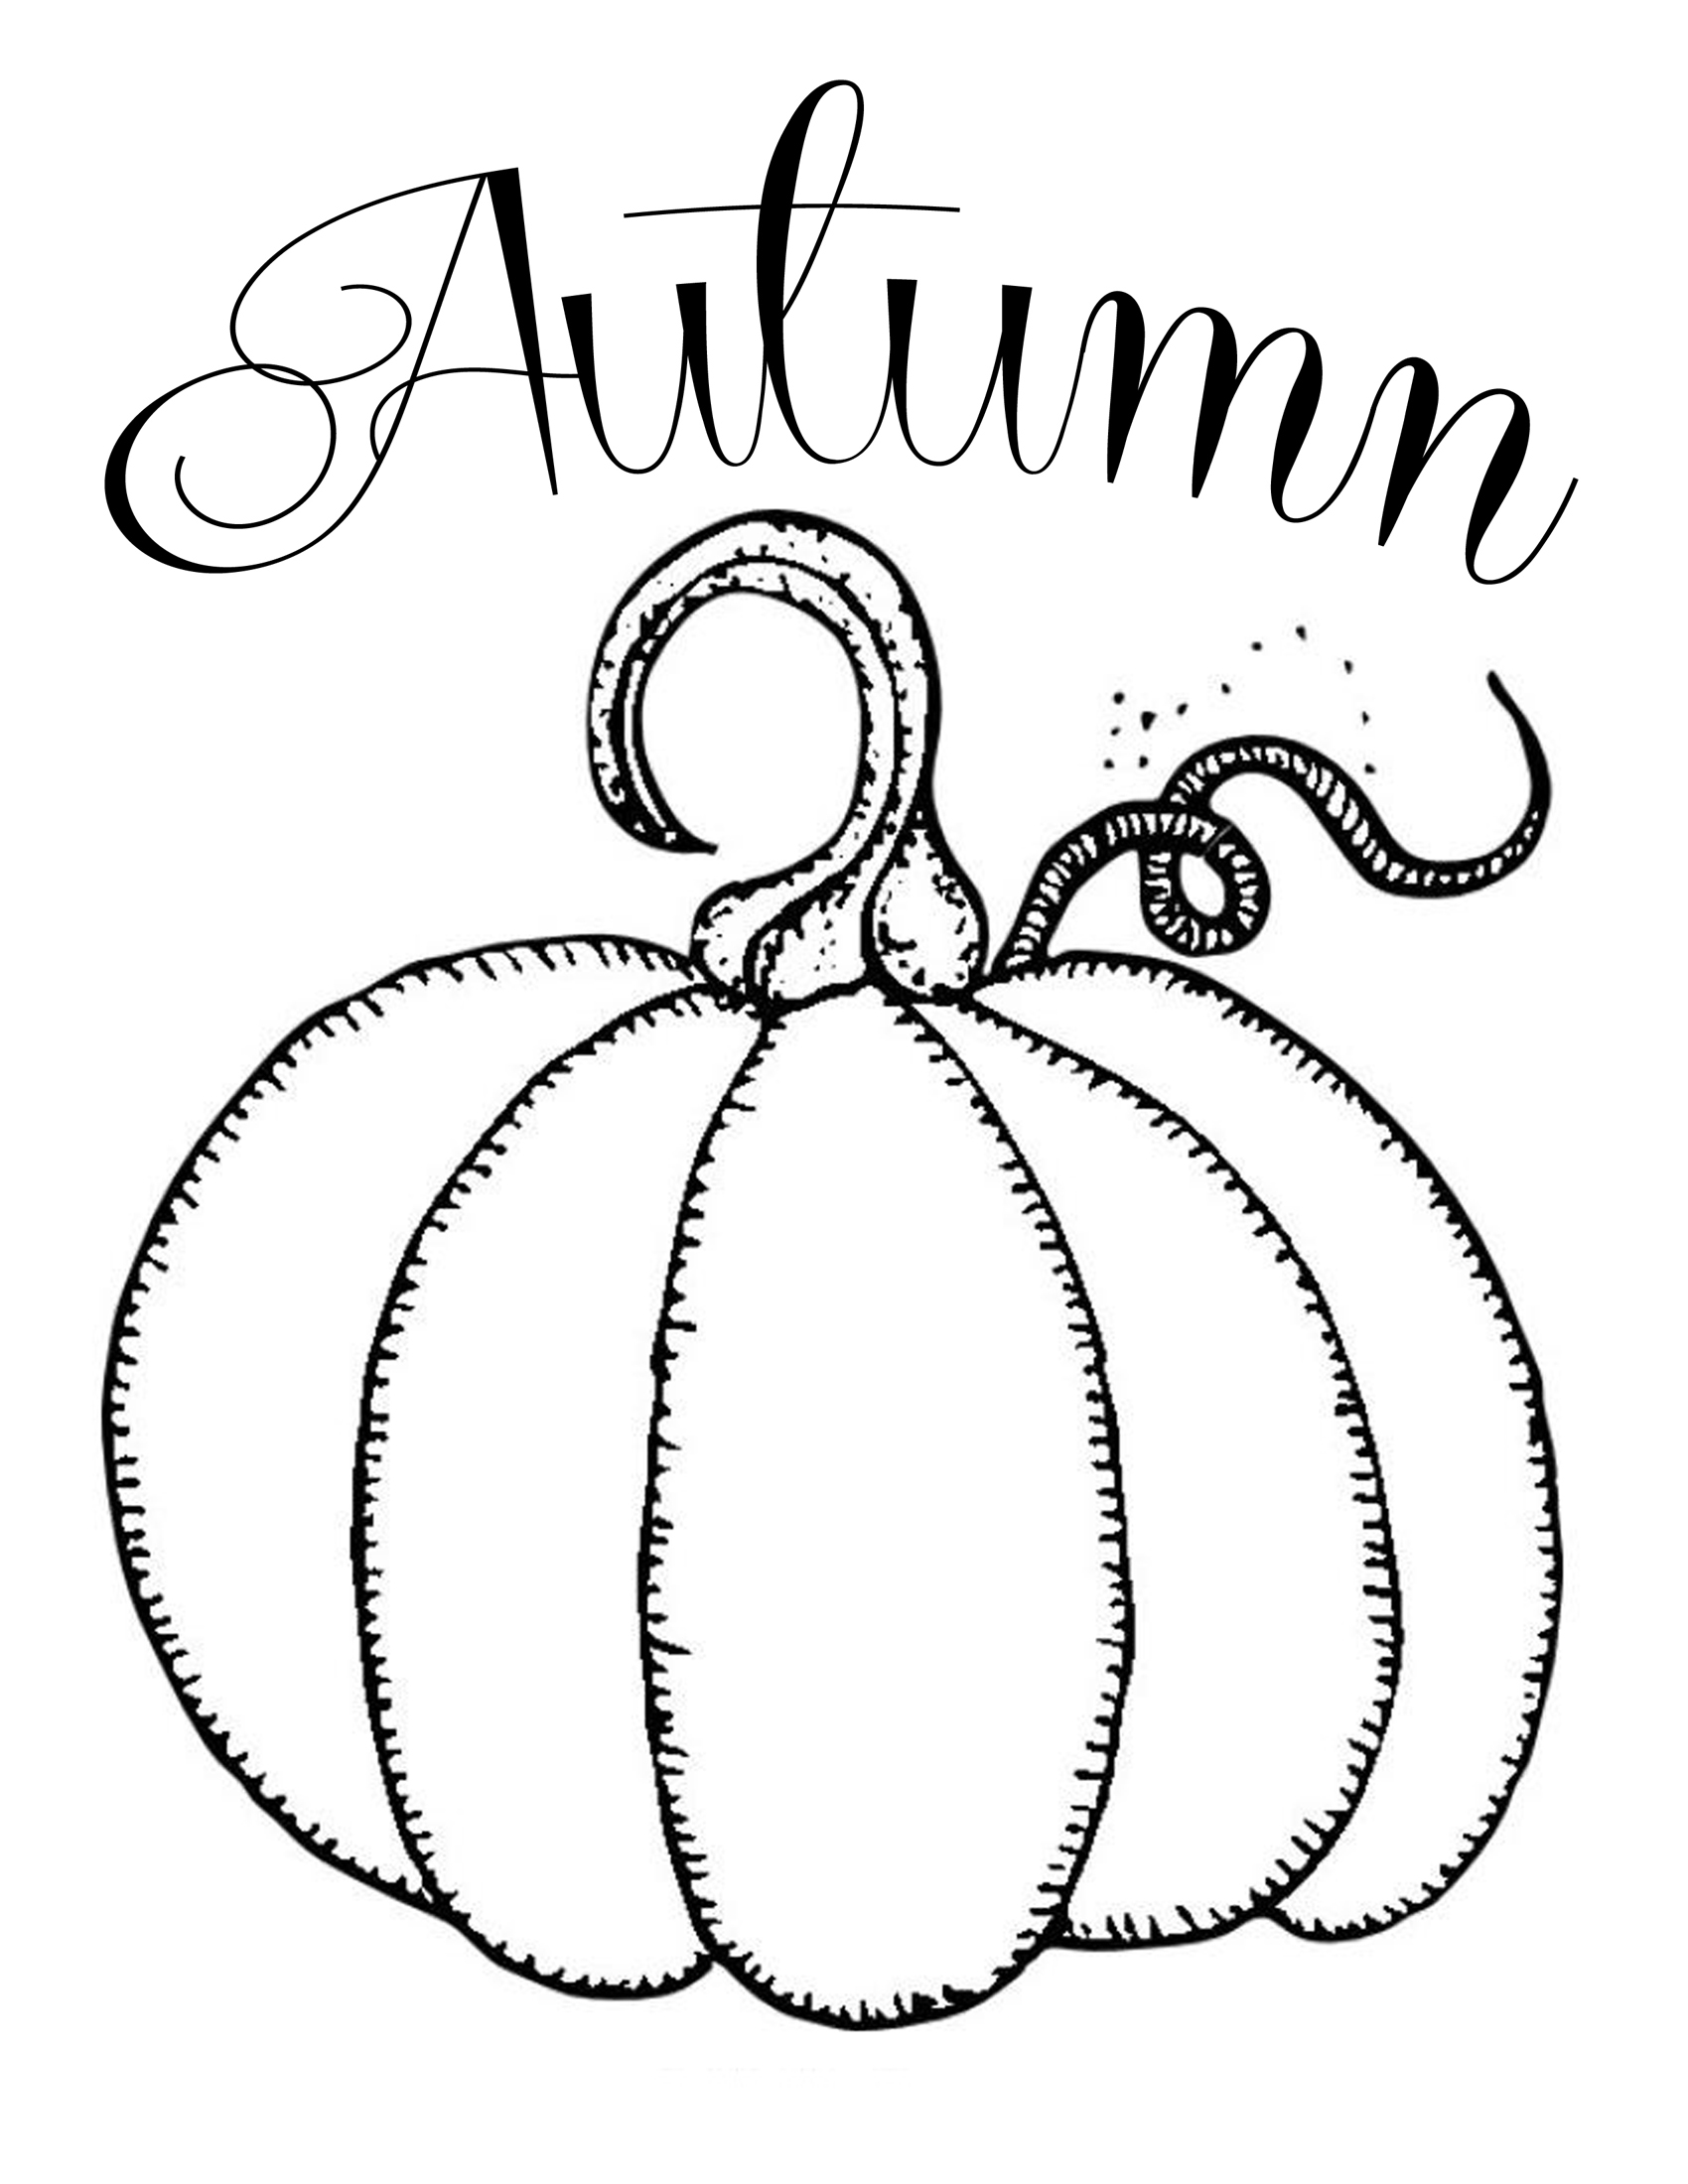 color a pumpkin simple pumpkin drawing at getdrawings free download color pumpkin a